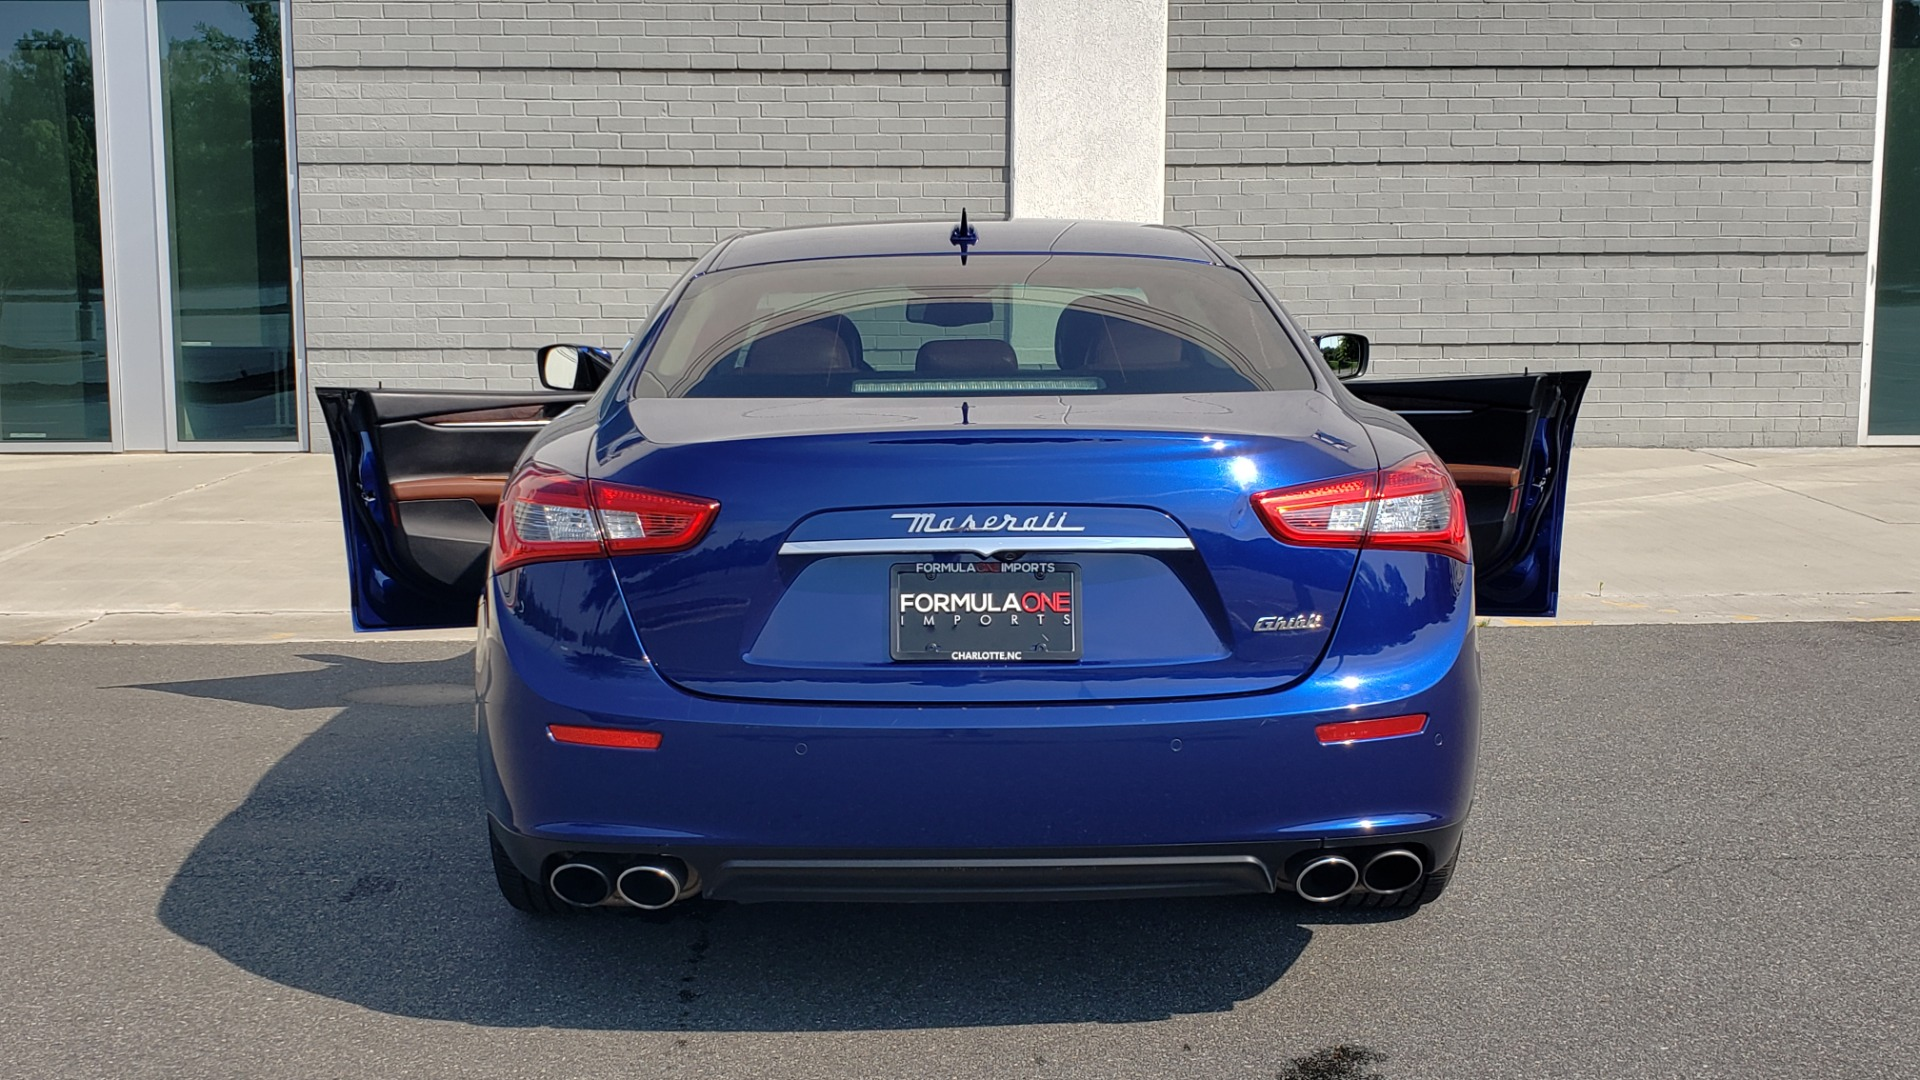 Used 2015 Maserati GHIBLI SEDAN / 3.0L V6 / 8-SPD AUTO / NAV / HTD STS / SUNROOF / REARVIEW for sale $24,495 at Formula Imports in Charlotte NC 28227 29